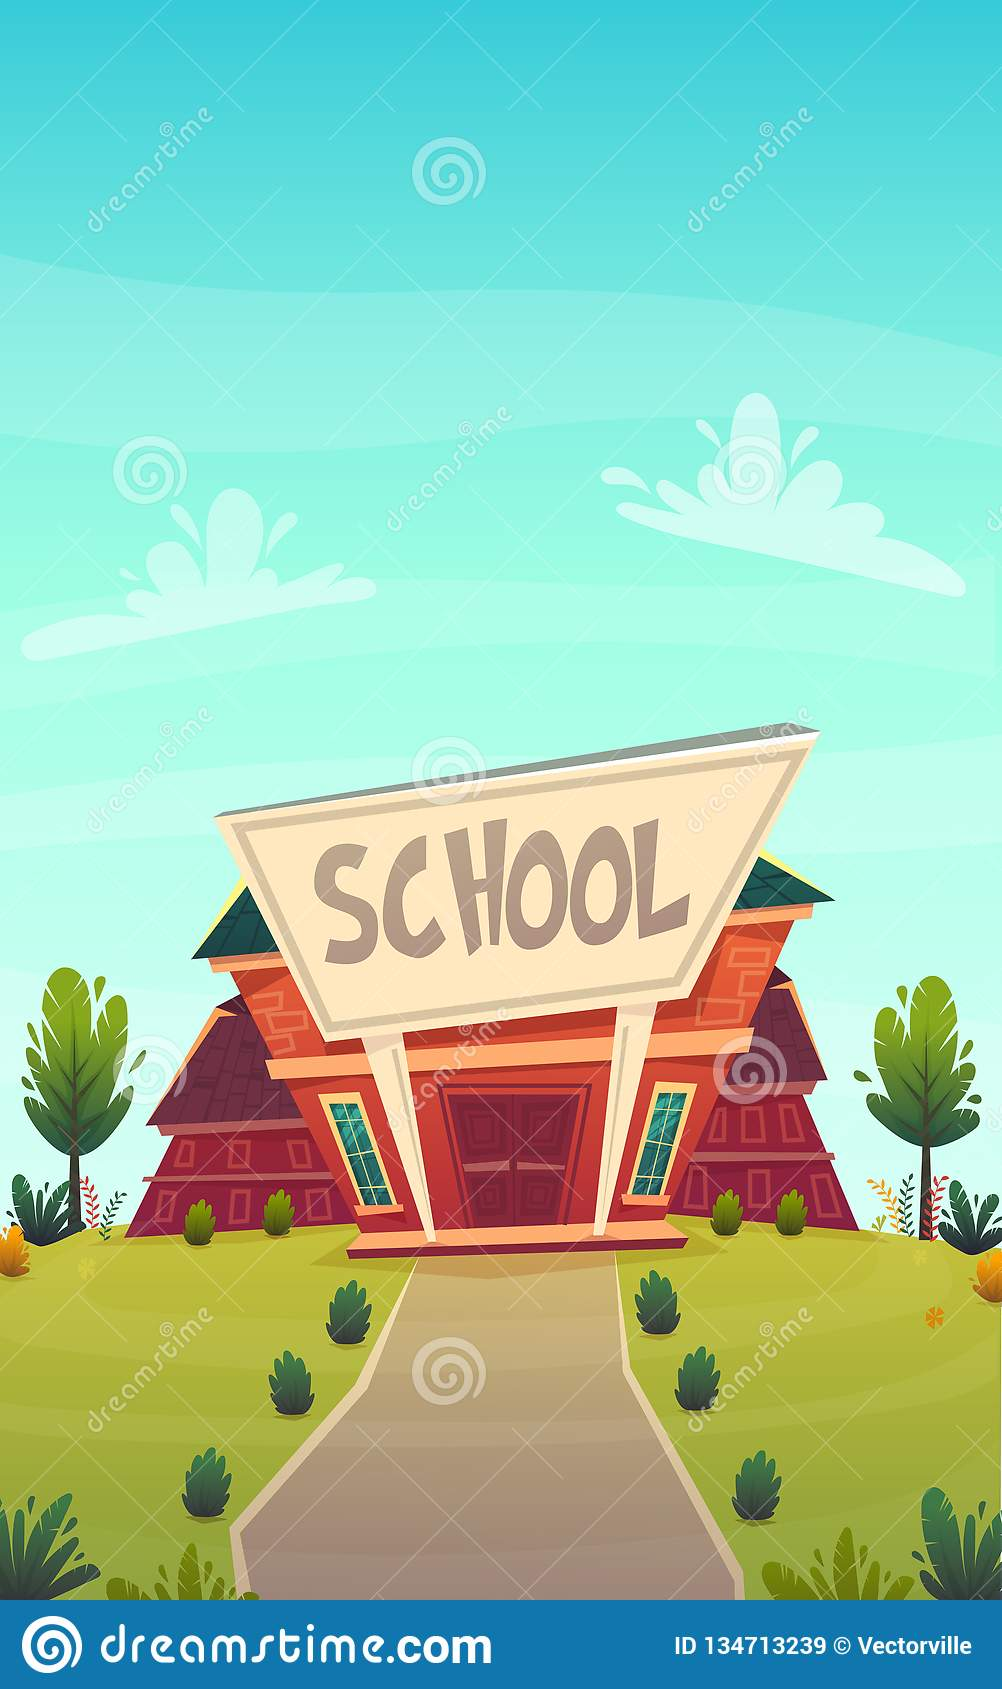 Cartoon School Background Wallpaper Place For Text Sign Funny Cheerful Card Poster Vector Illustration Stock Vector Illustration Of Design Front 134713239